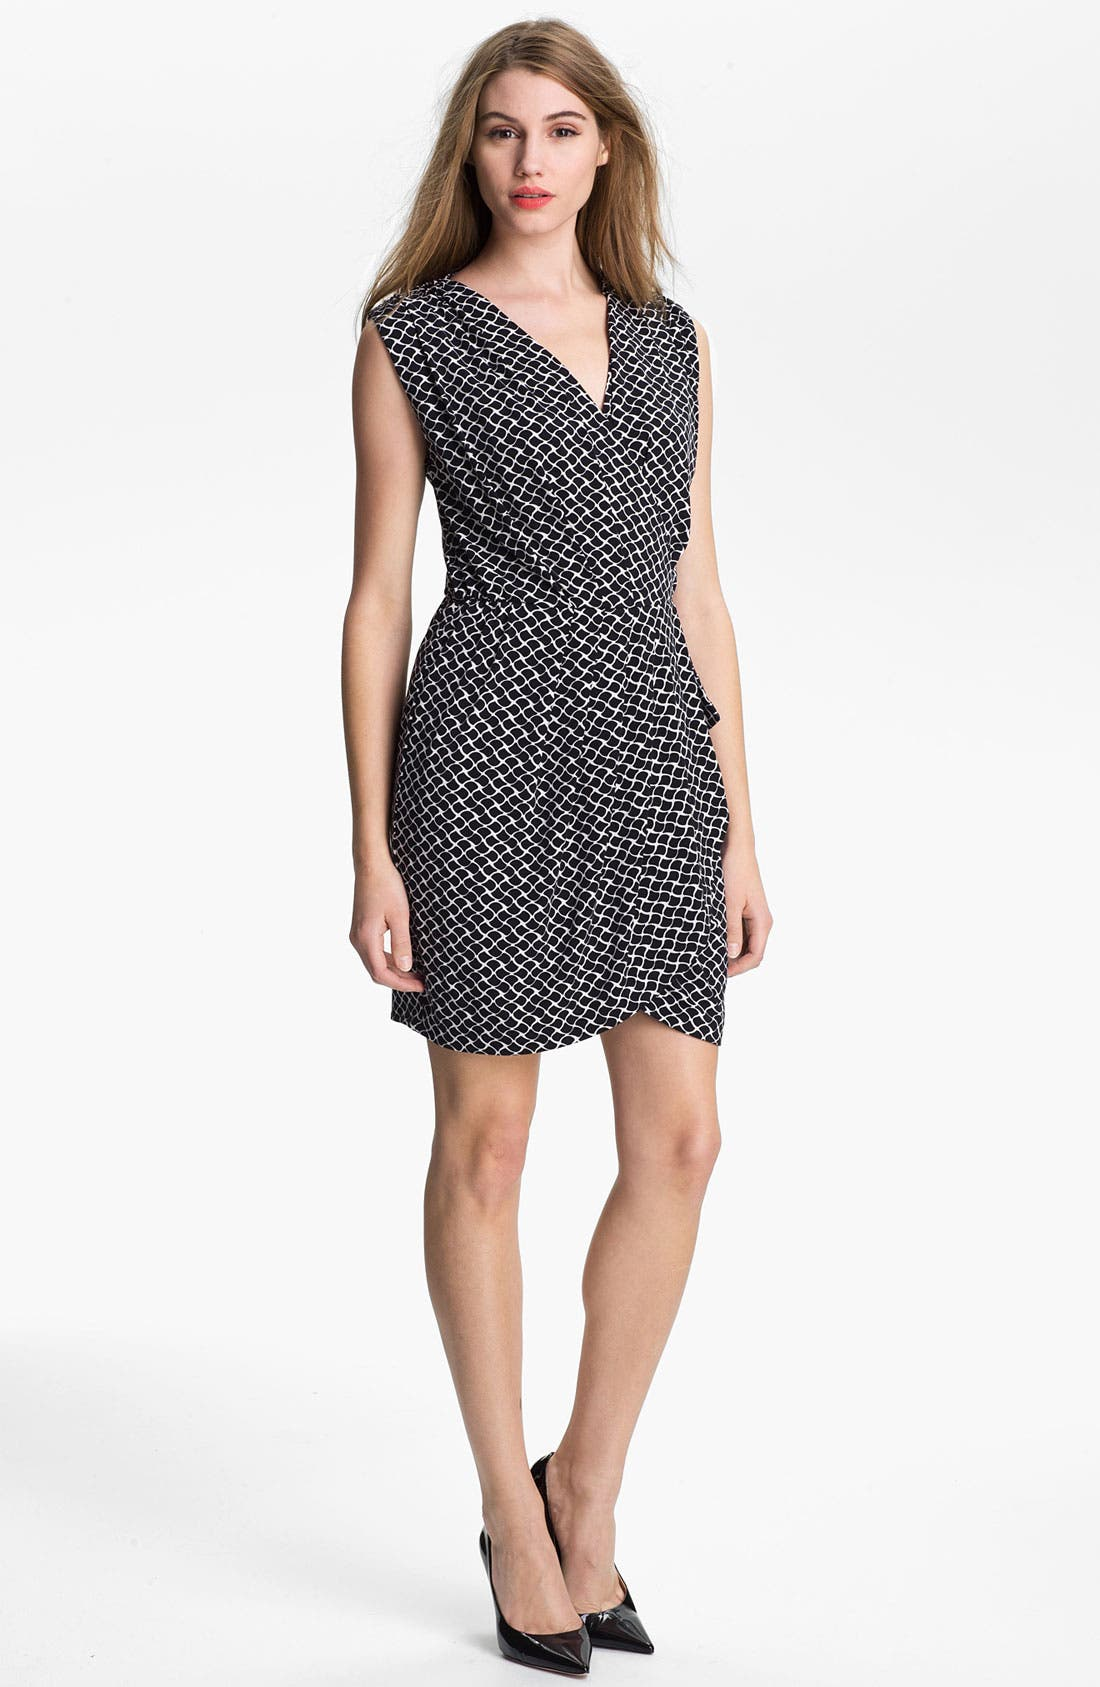 Alternate Image 1 Selected - Vince Camuto 'Swirling Teardrop' Faux Wrap Dress